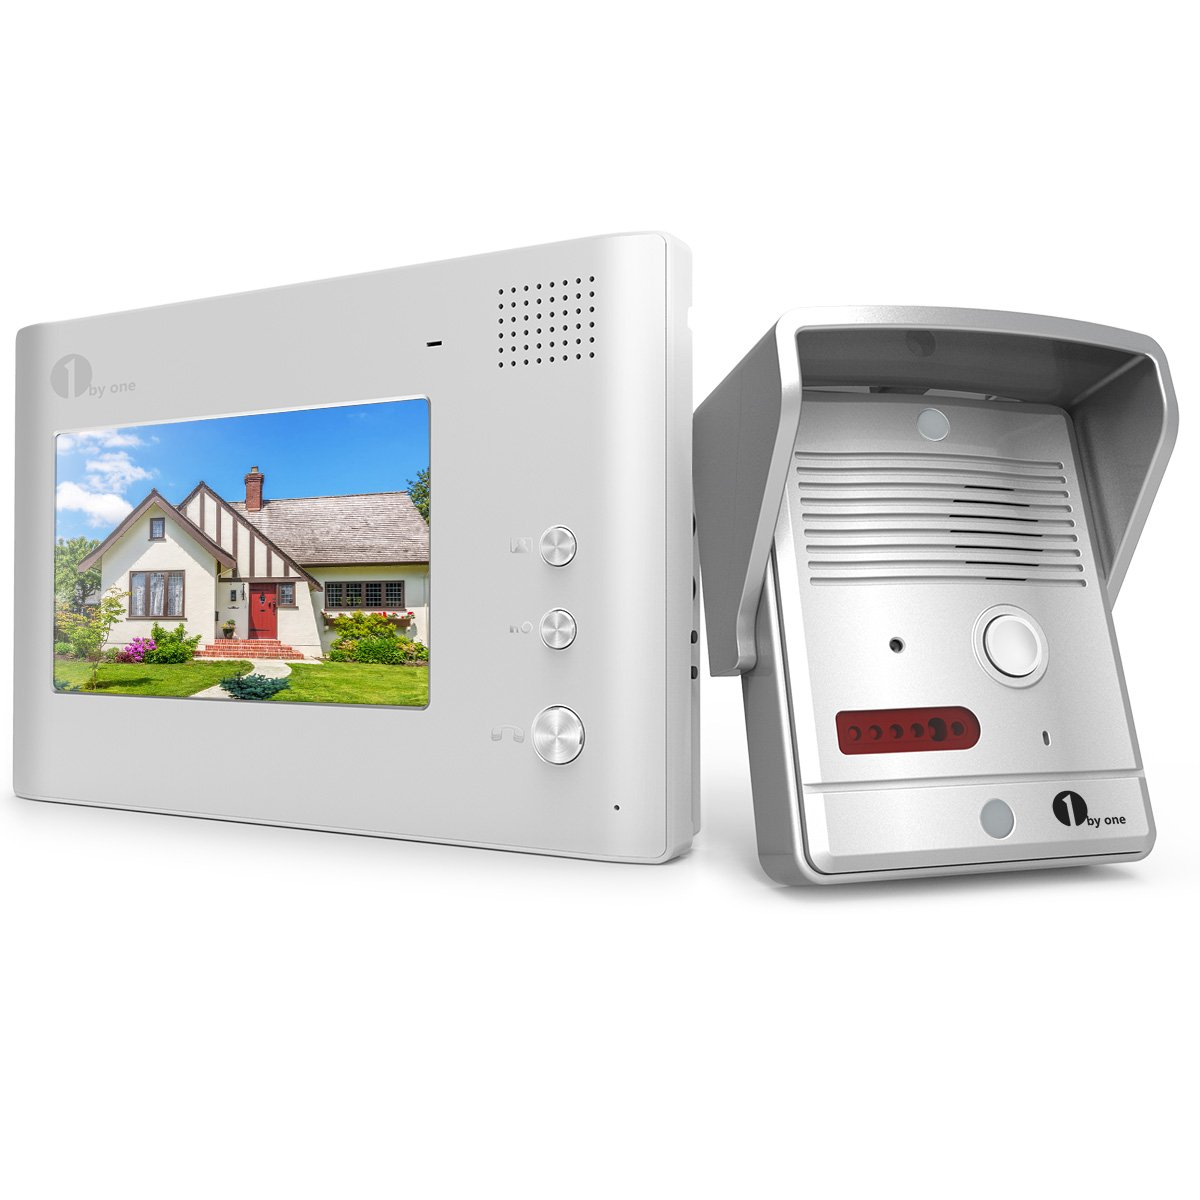 1byone Video Doorphone 2-Wires Video Intercom System 7-inch Color Monitor and Pinhole HD Camera Video Doorbell with 49ft Cable, Simply Intercom Function System